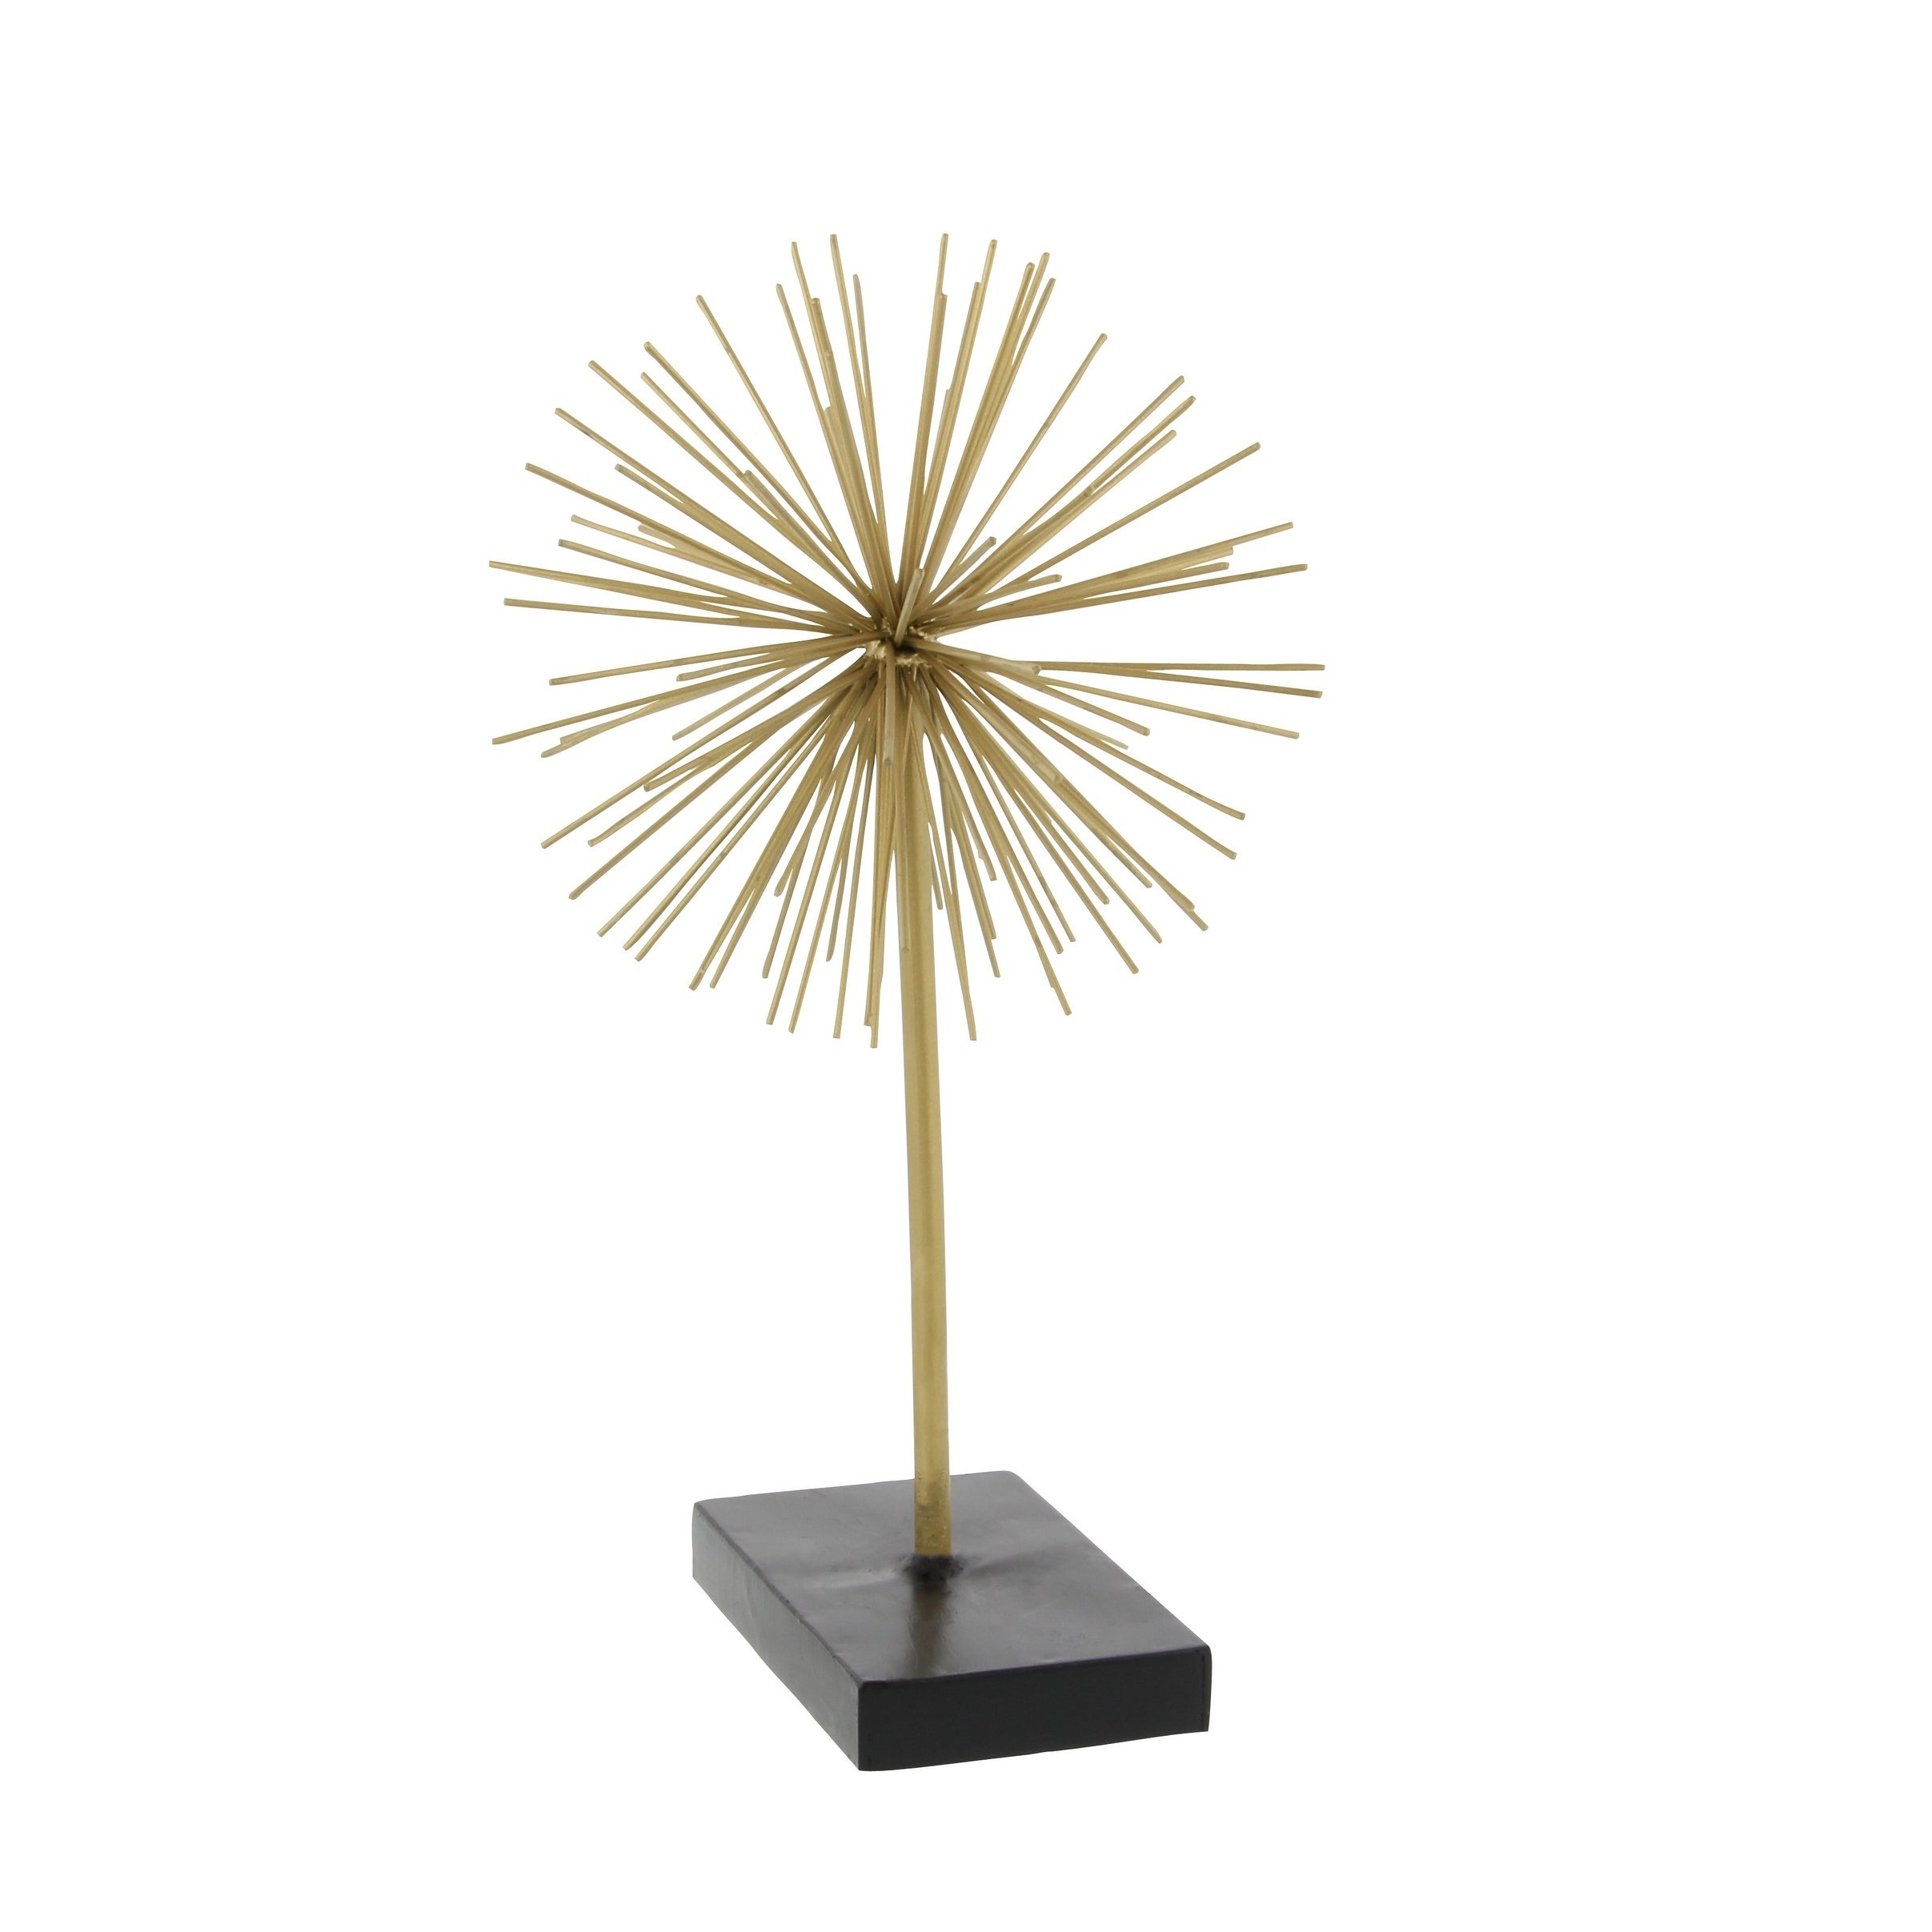 "Tall Contemporary Style 3d Round Gold Metal Starburst Sculptures On Black Stands Set Of 3 – 11"", 15"", 20"" For Set Of 3 Contemporary 6, 9, And 11 Inch Gold Tin Starburst Sculptures (View 4 of 30)"